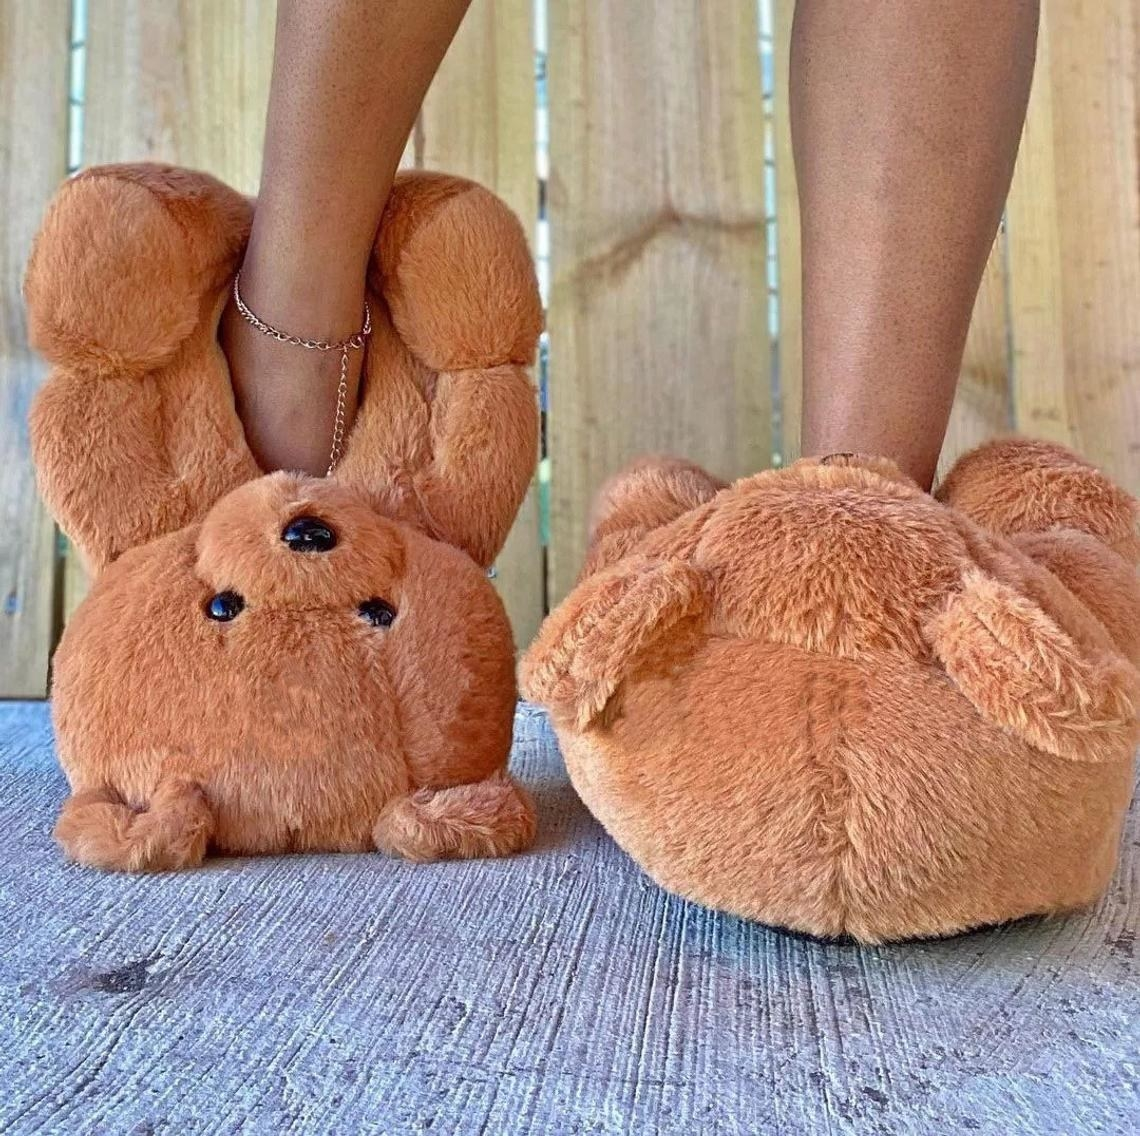 teddy bears with holes in the stomachs for the feet to go in